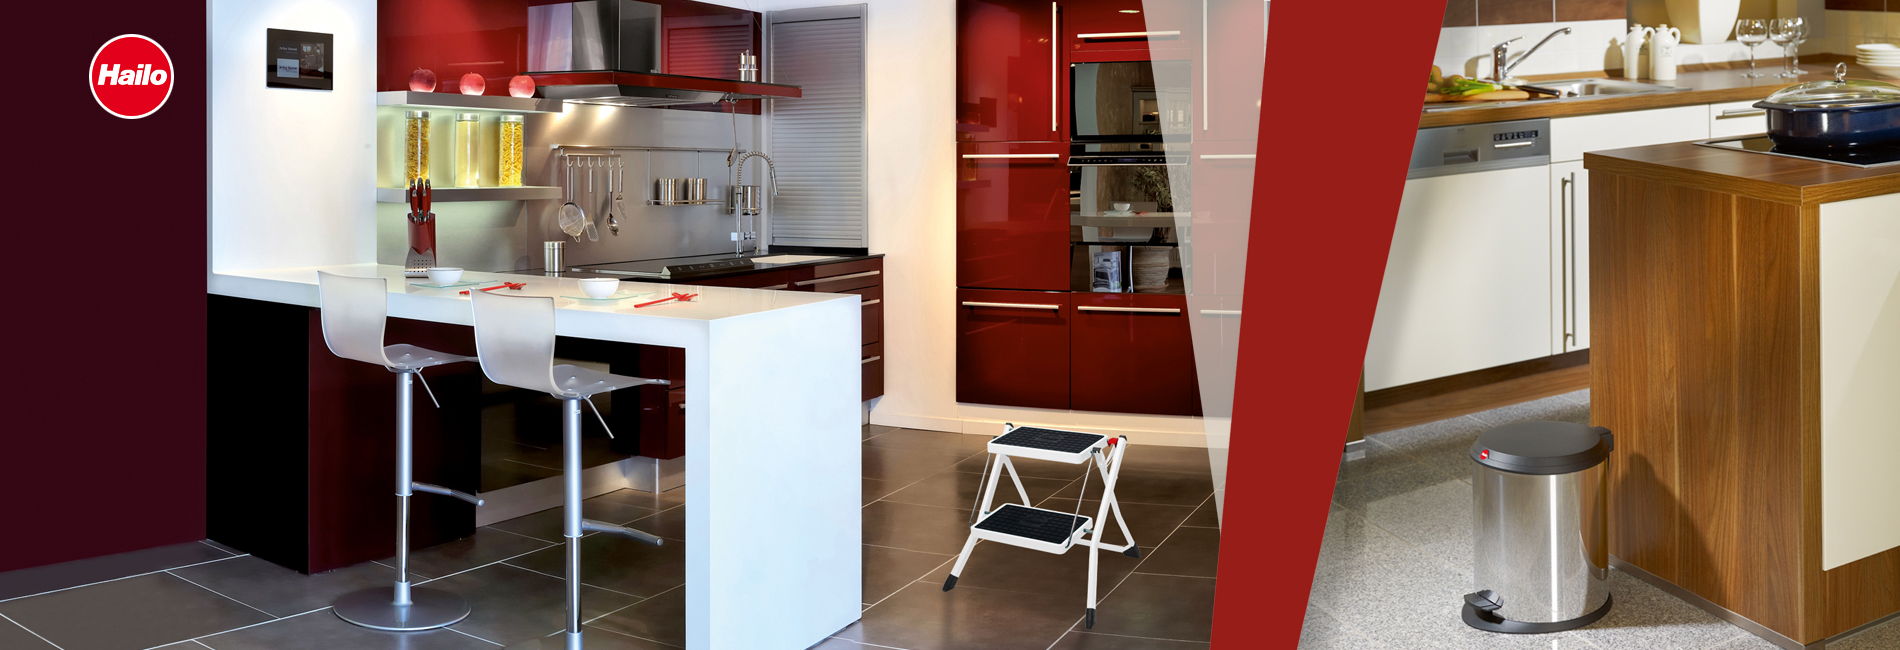 Ladders and steps for home and garden, waste bins and accessories for kitchen and bathroom The Convincing range of products for every demand